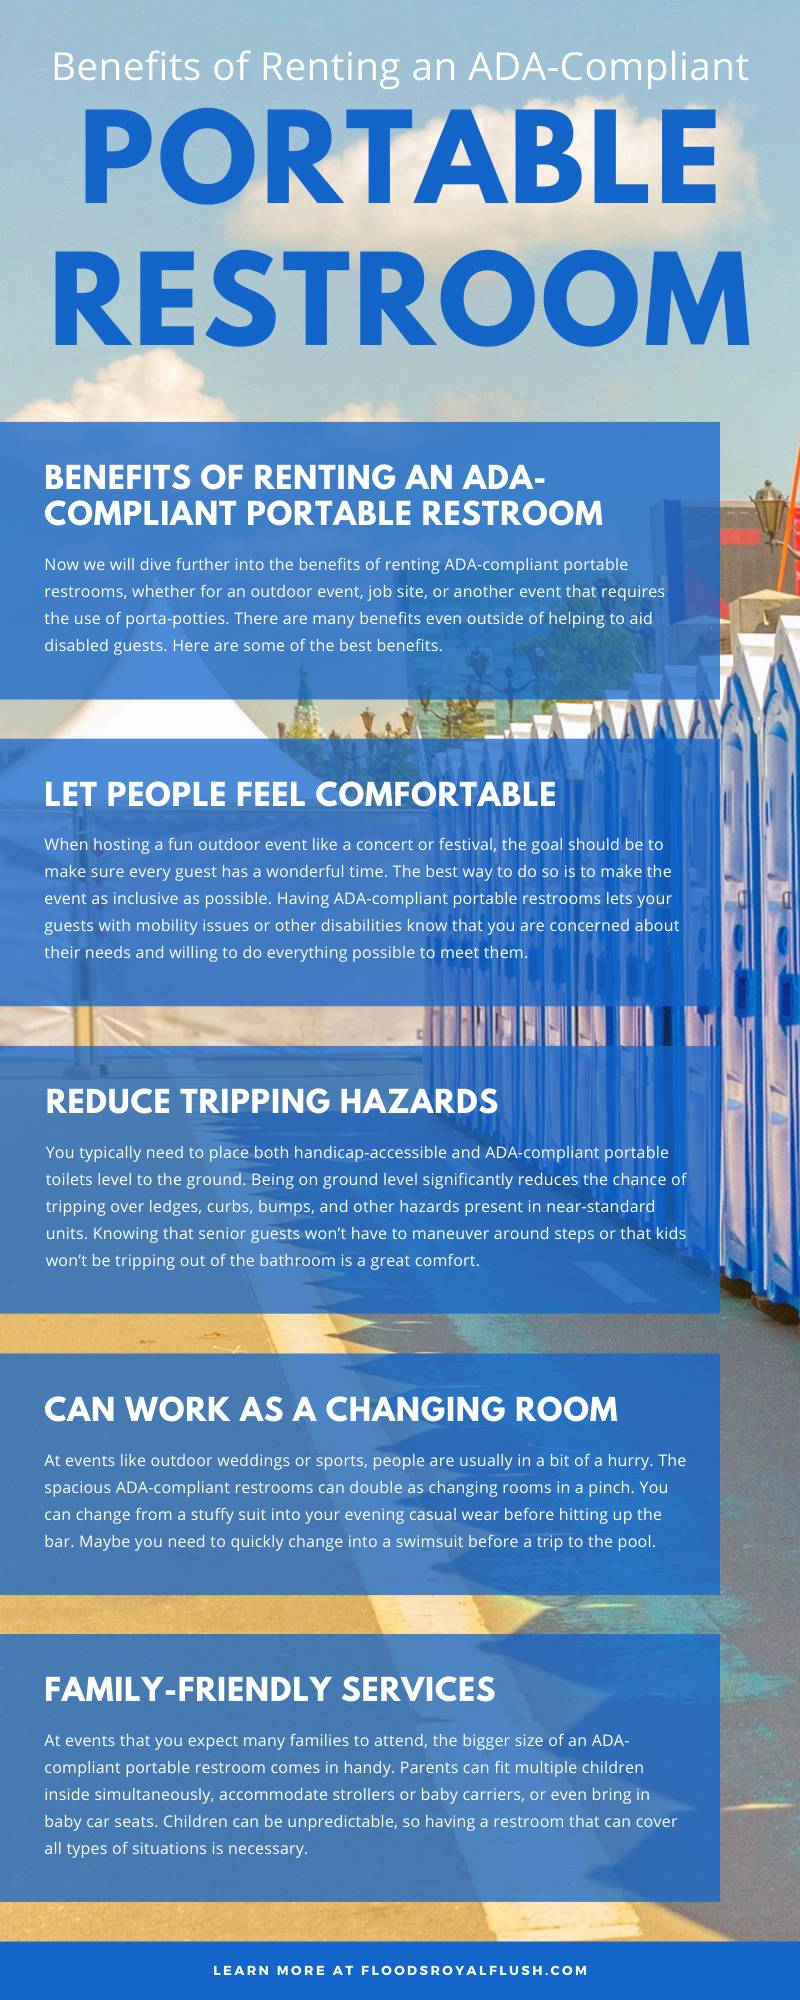 Benefits of Renting an ADA-Compliant Portable Restroom